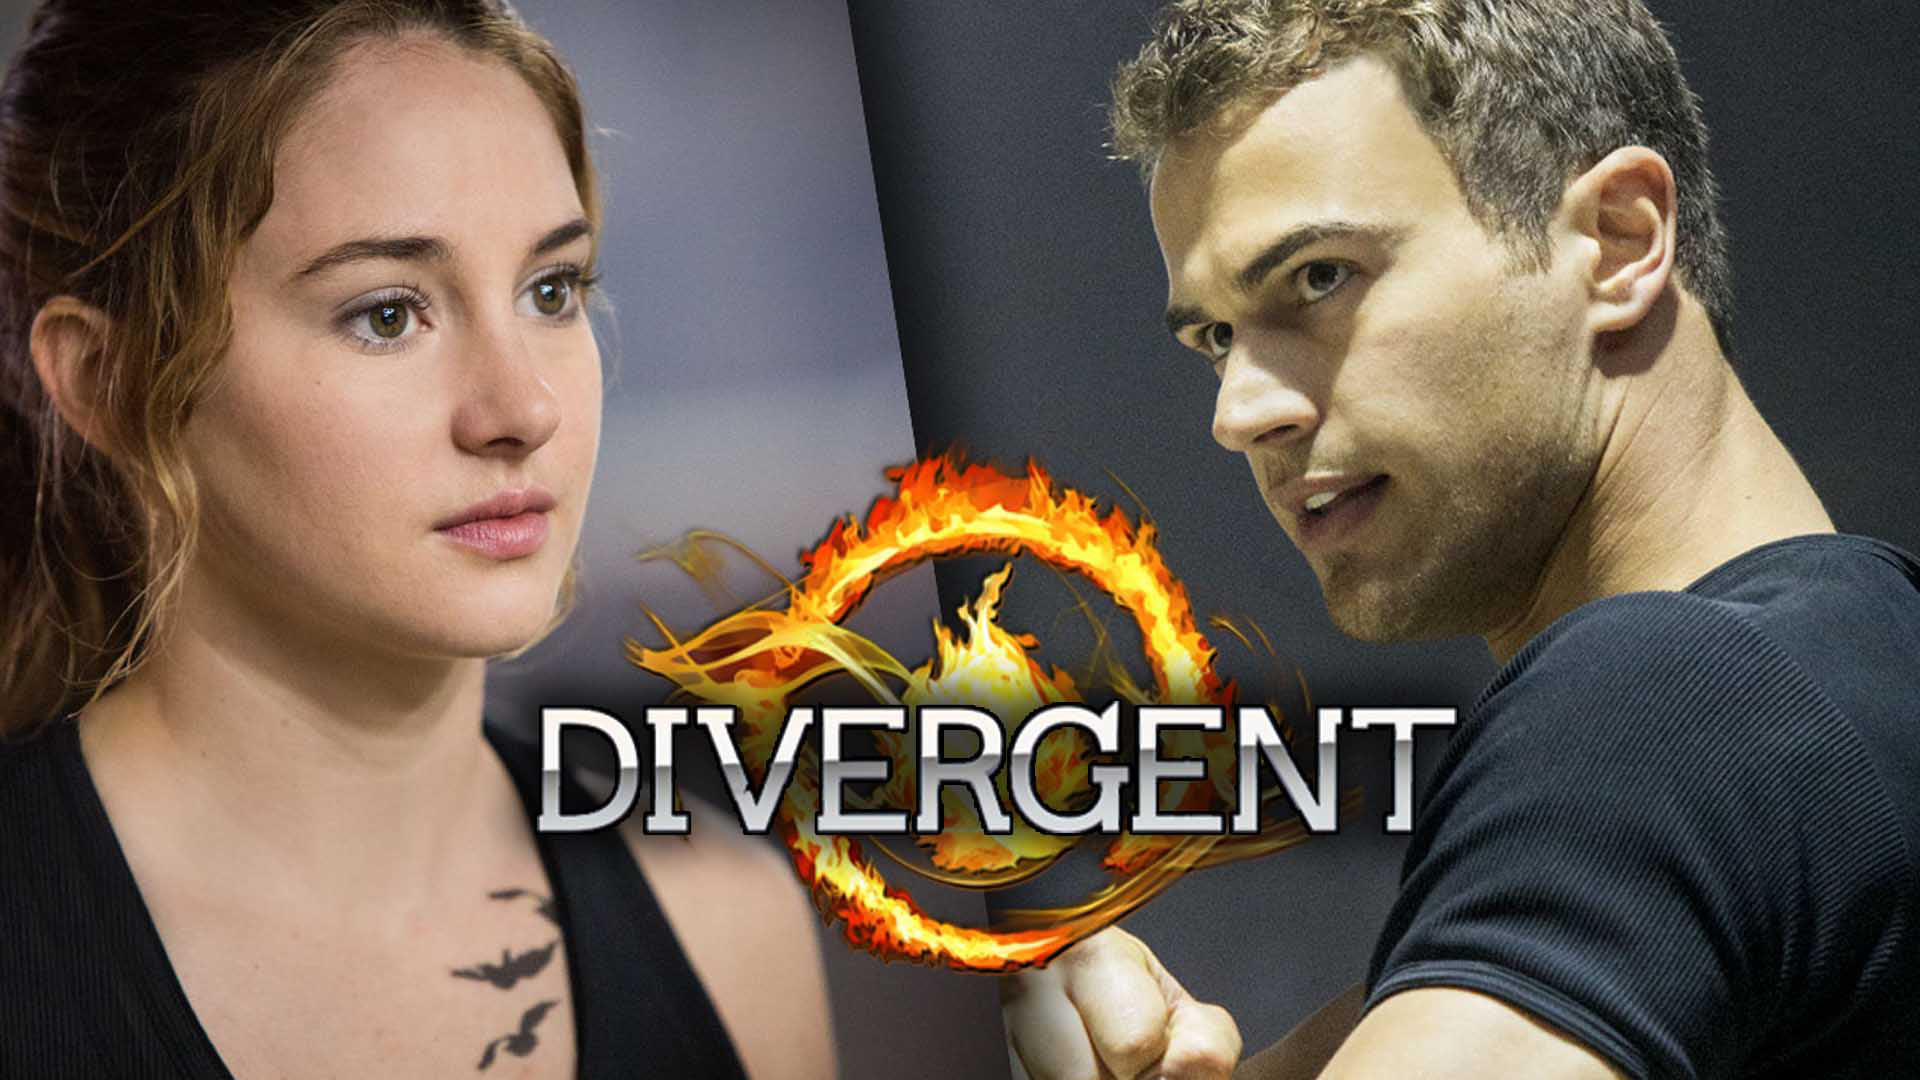 Divergent desktop wallpaper